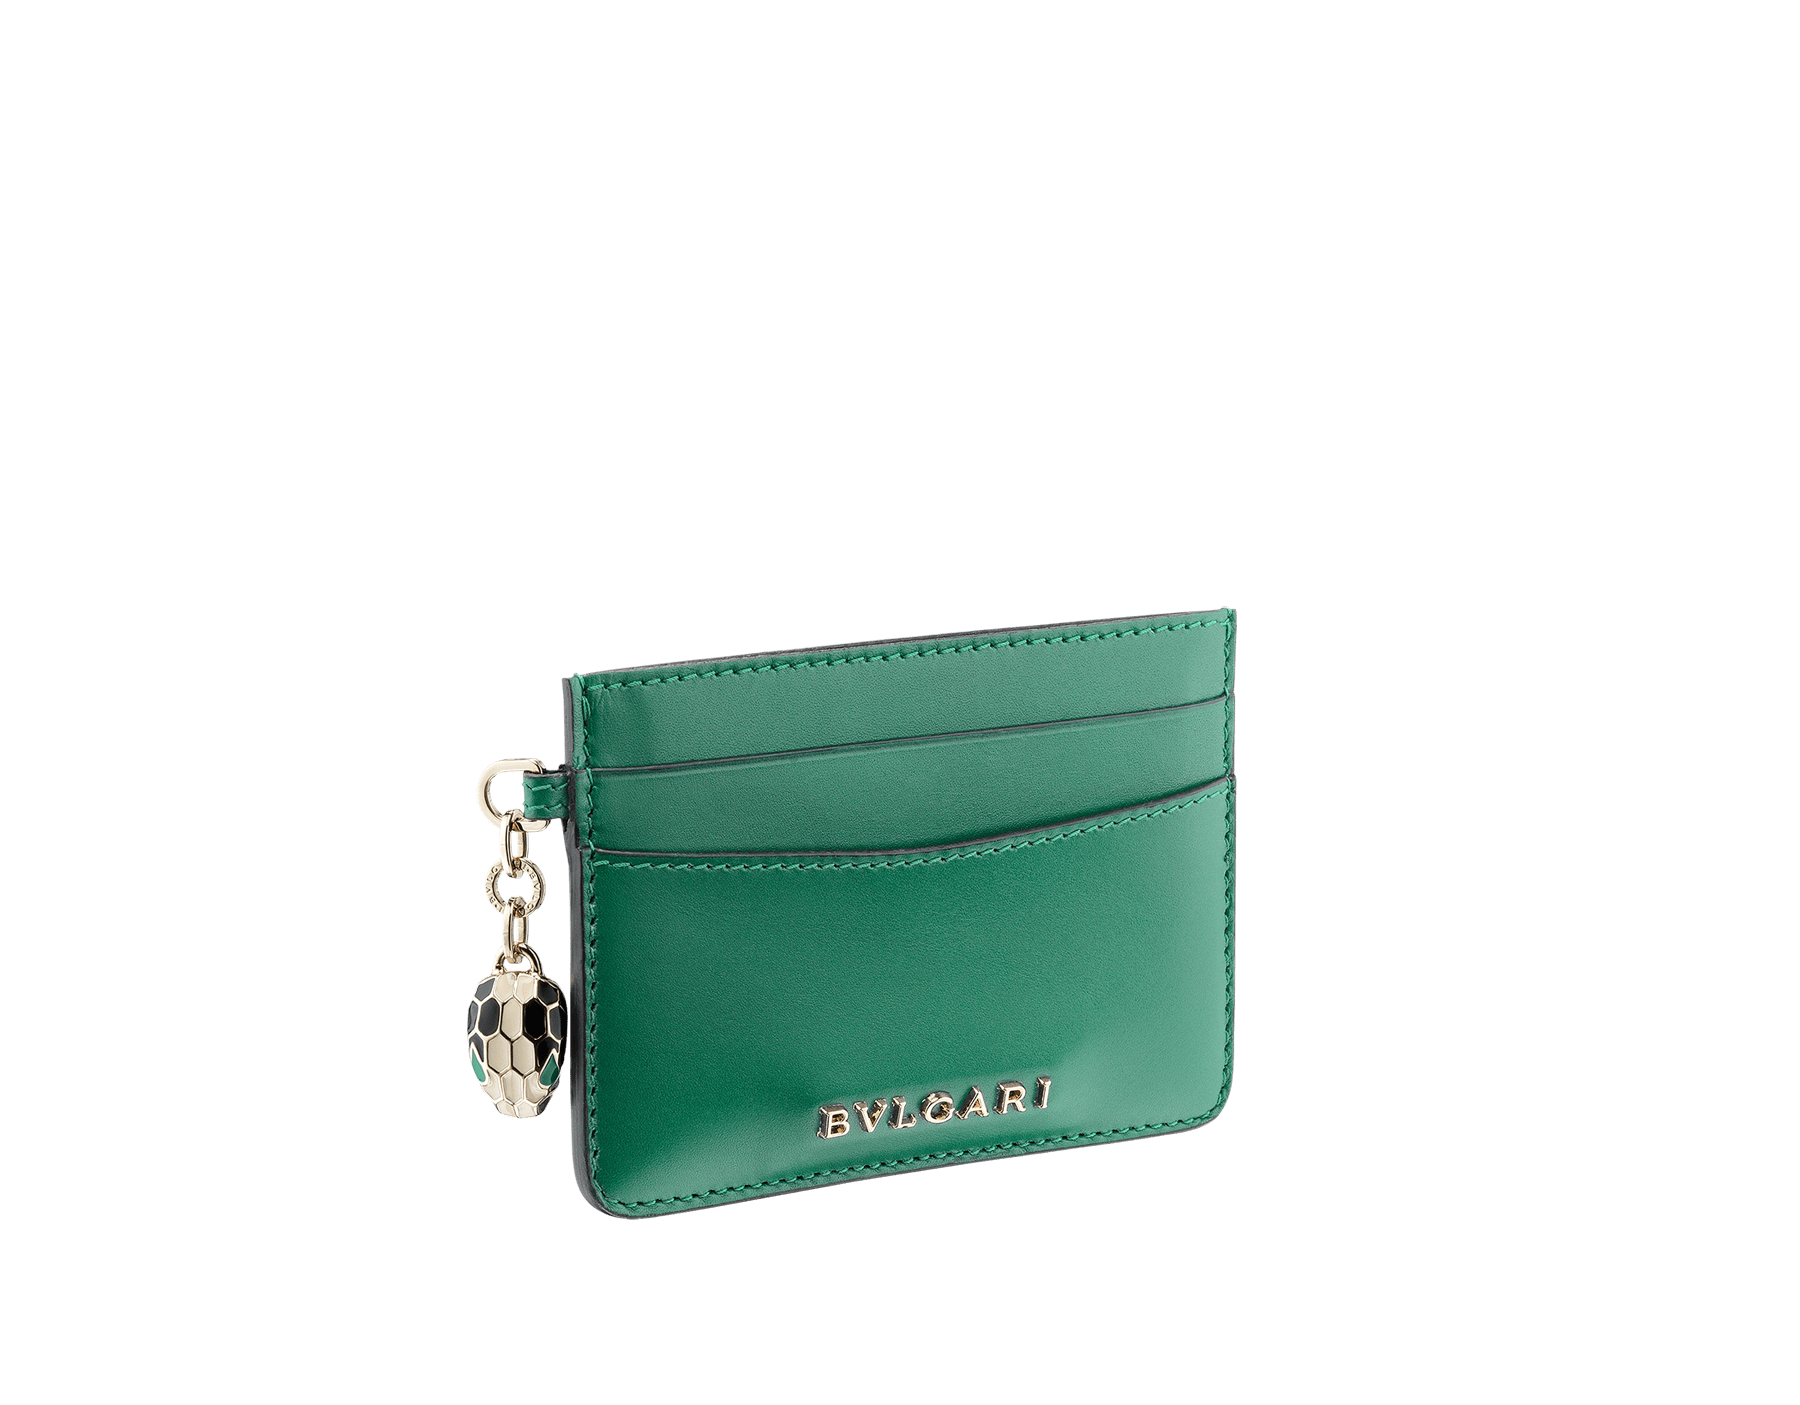 Credit card holder in emerald green and violet amethyst calf leather. Serpenti charm in black and white enamel with green malachite enamel eyes and Bulgari logo in metal characters. Four credit card slots and one compartment. Also available in other colours. 10,5 x 7,5 cm. - 4.1. x 3.0'' 282019 image 1